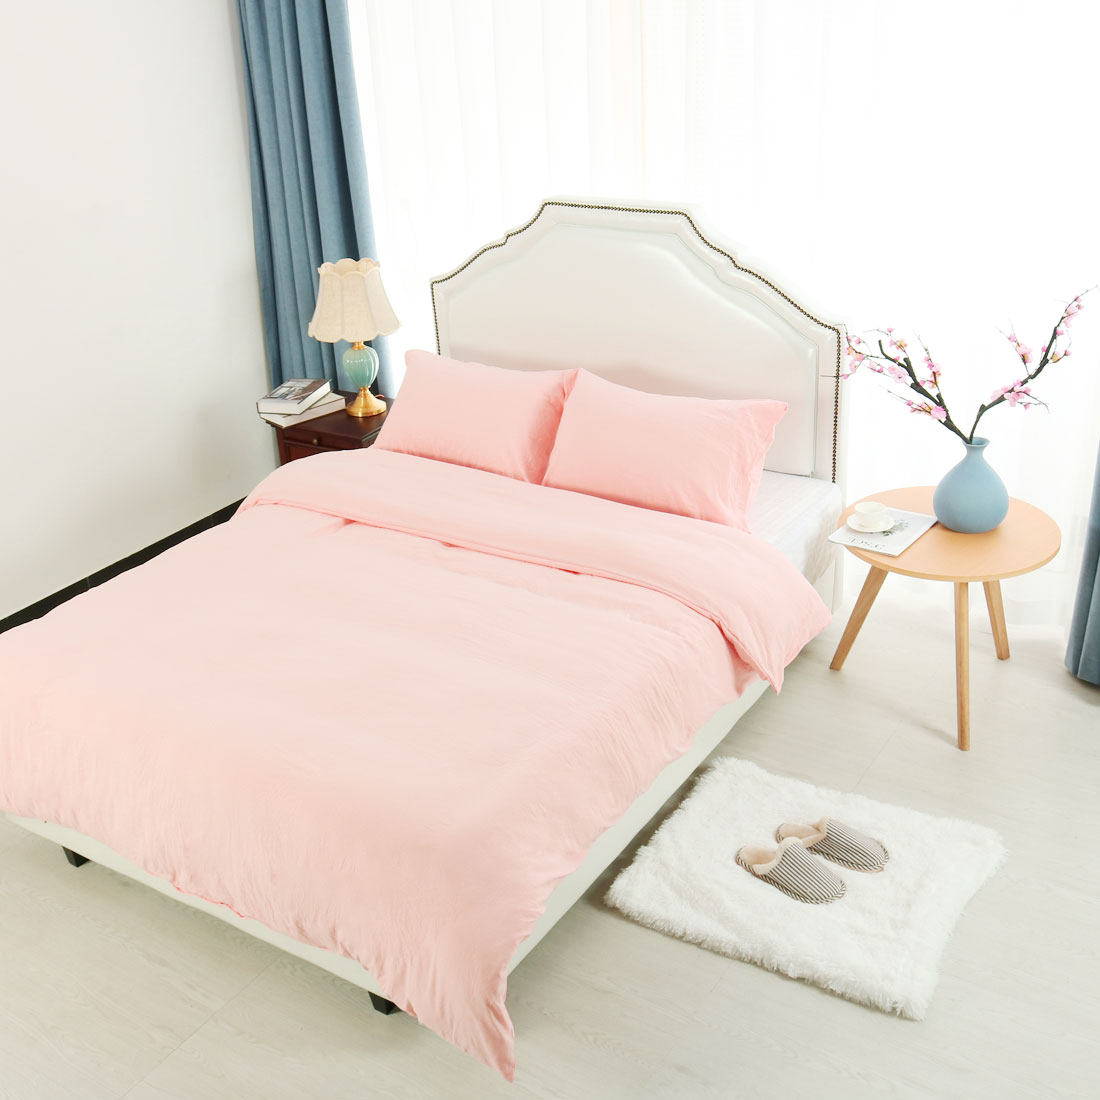 Queen Duvet Cover Set (1 Duvet Cover + 2 Pillowcases) Washed Cotton Coral Pink